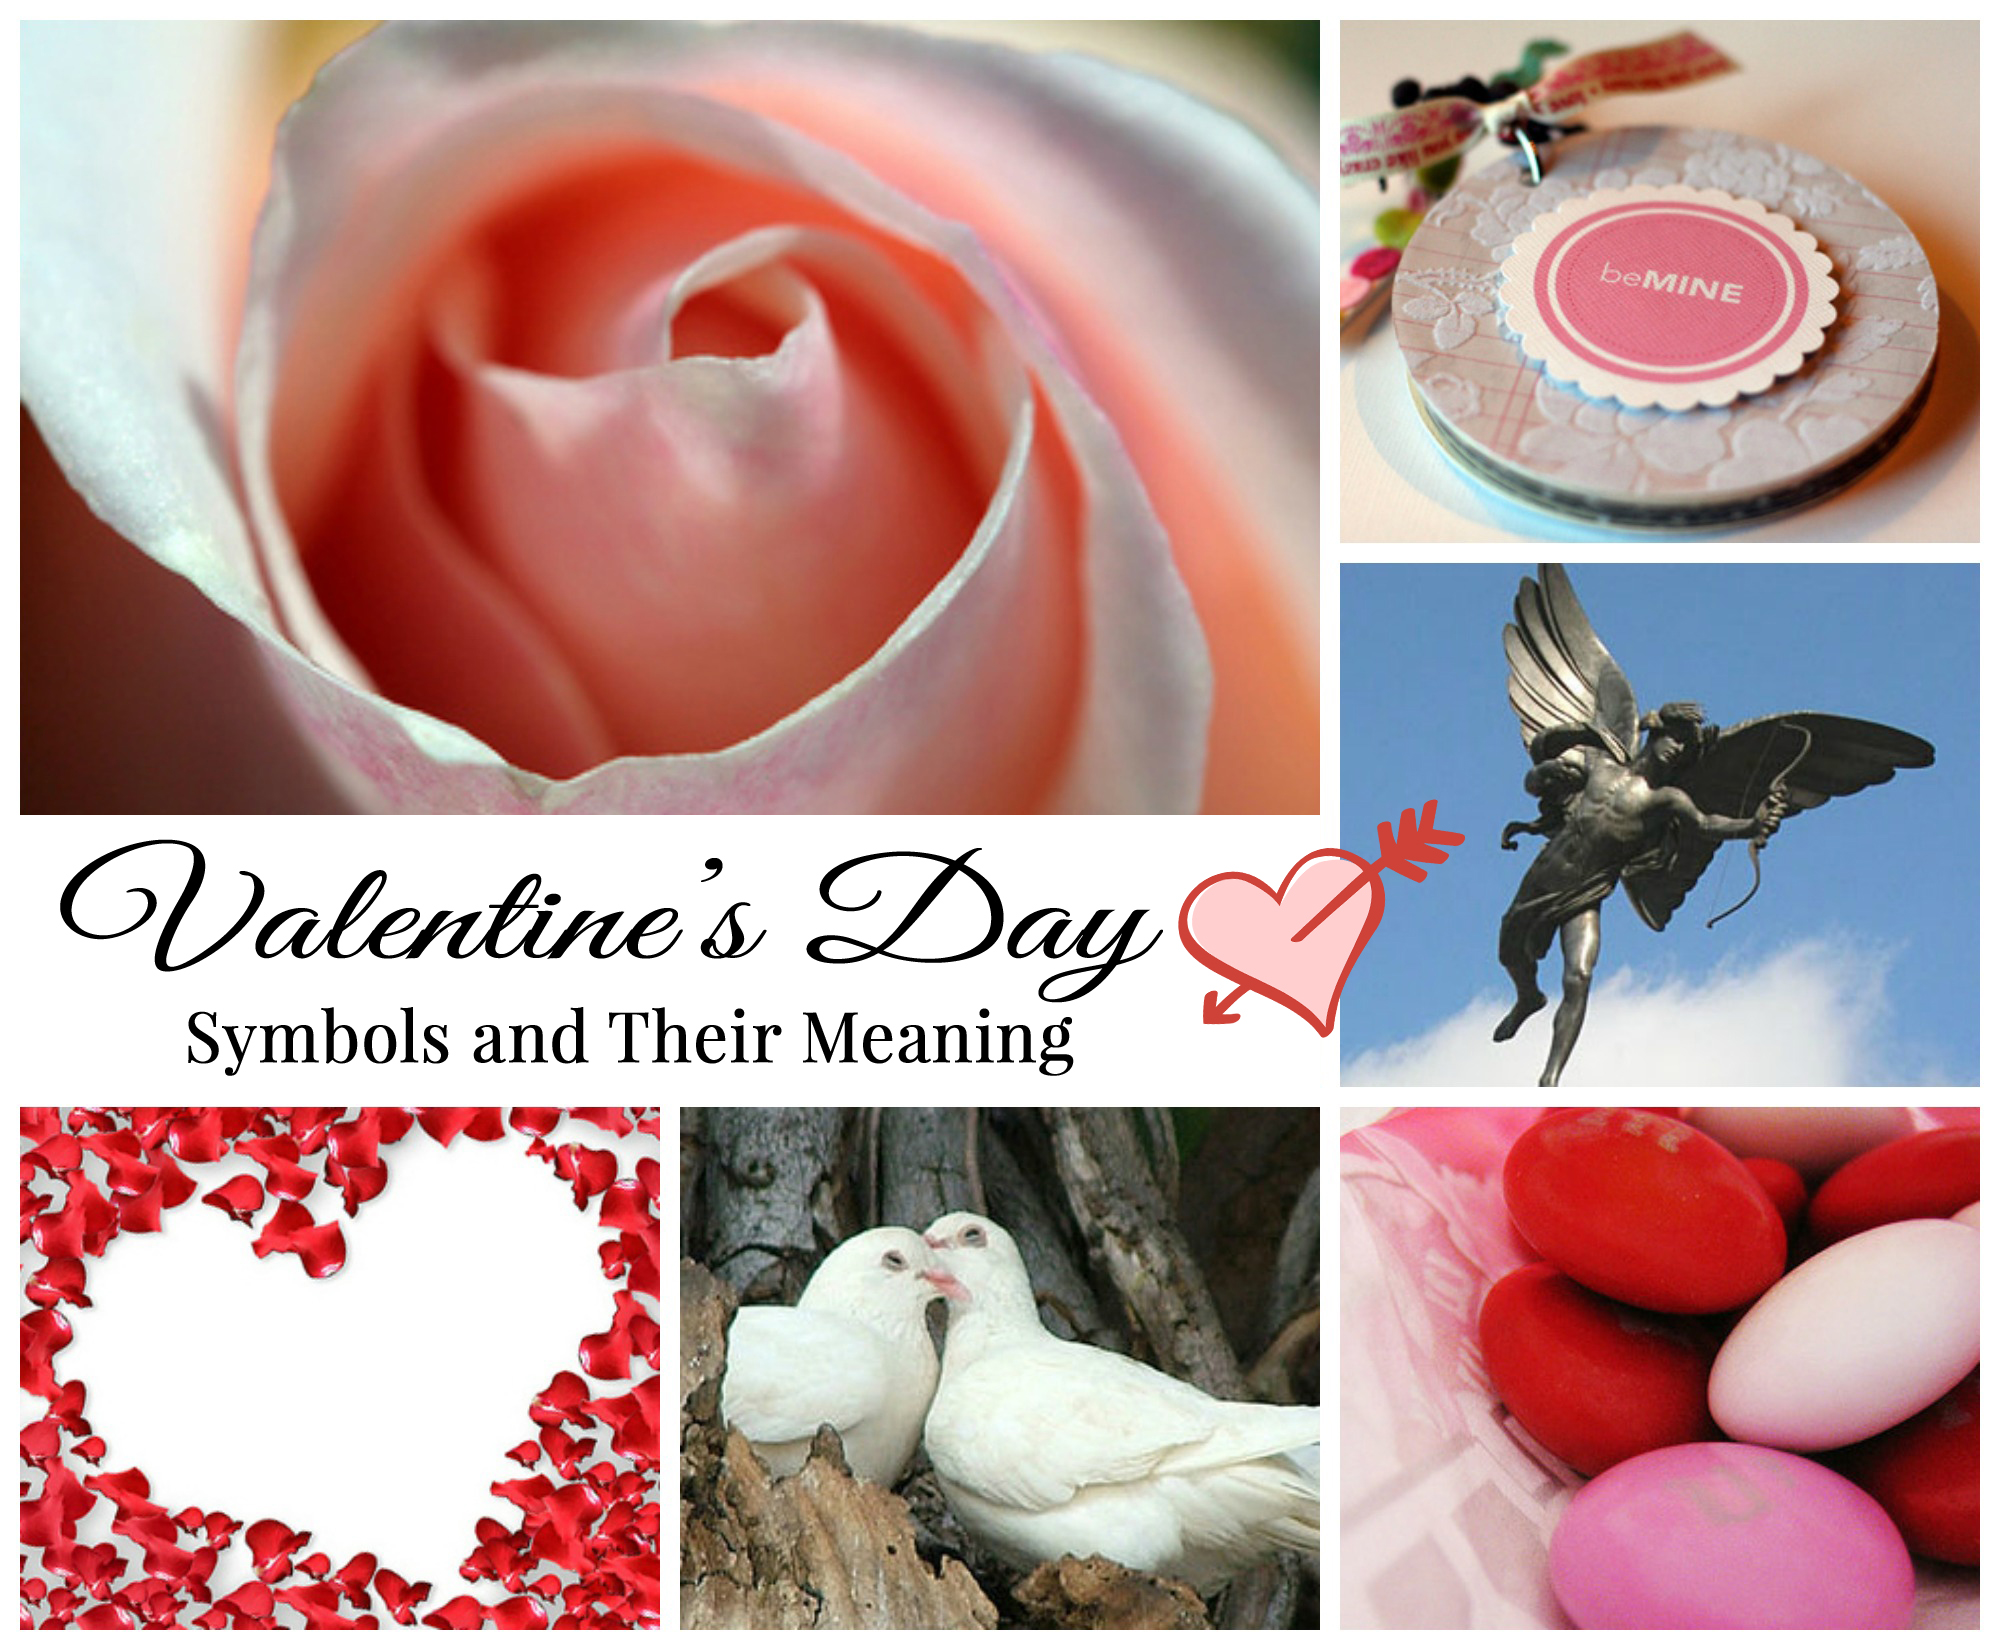 Valentine's Day Symbols and Their Meaning